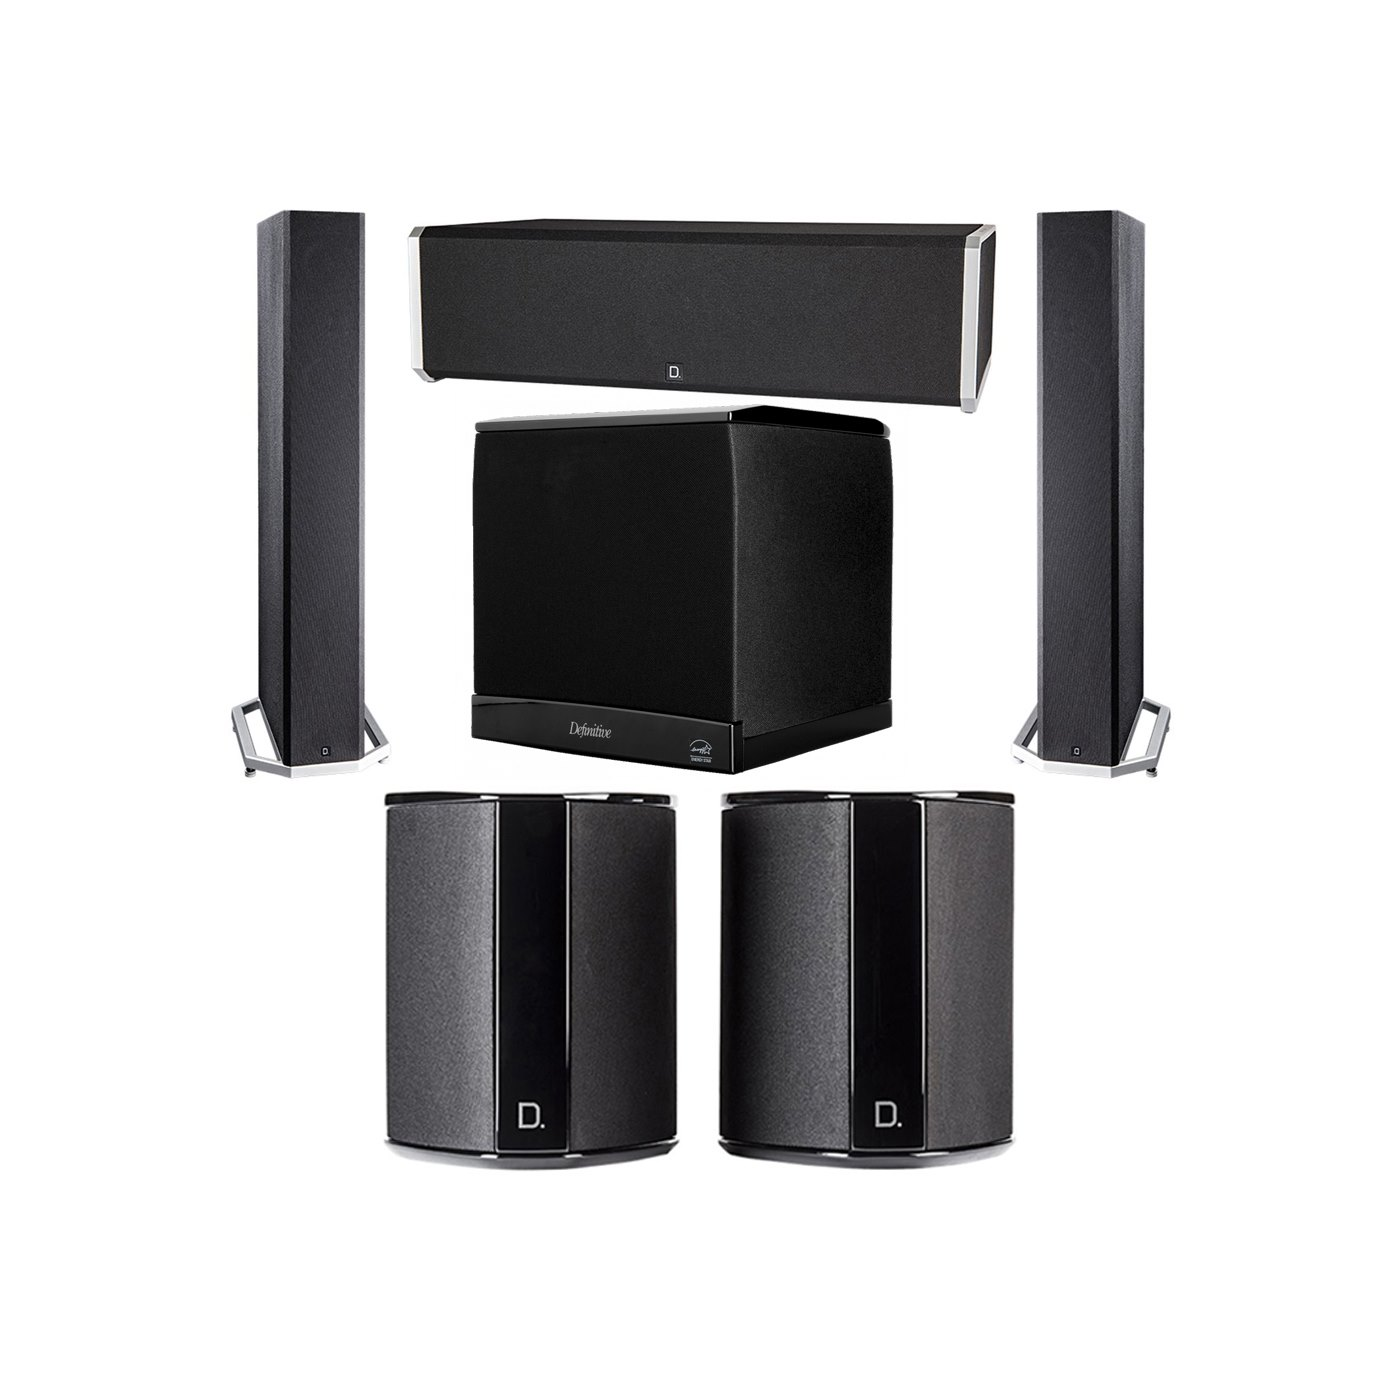 Definitive Technology 5.1 System with 2 BP9040 Tower Speakers, 1 CS9040 Center Channel Speaker, 2 SR9040 Surround Speaker, 1 Definitive Technology SuperCube 4000 Powered Subwoofer